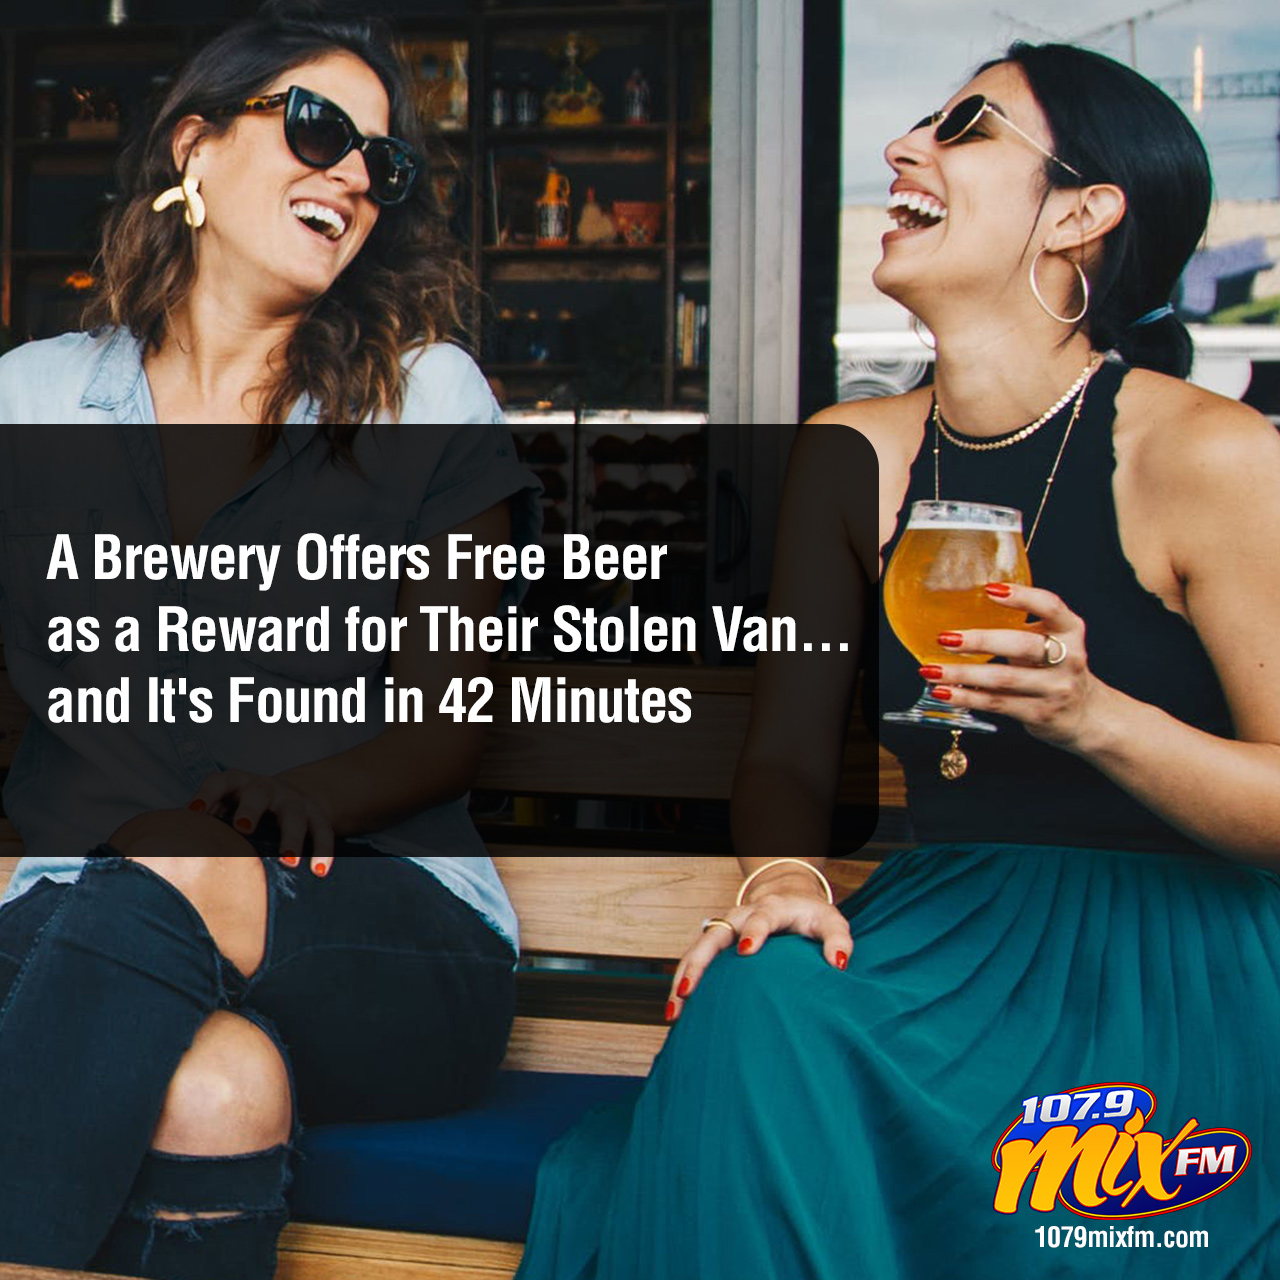 A Brewery Offers Free Beer as a Reward for Their Stolen Van . . . and It's Found in 42 Minutes